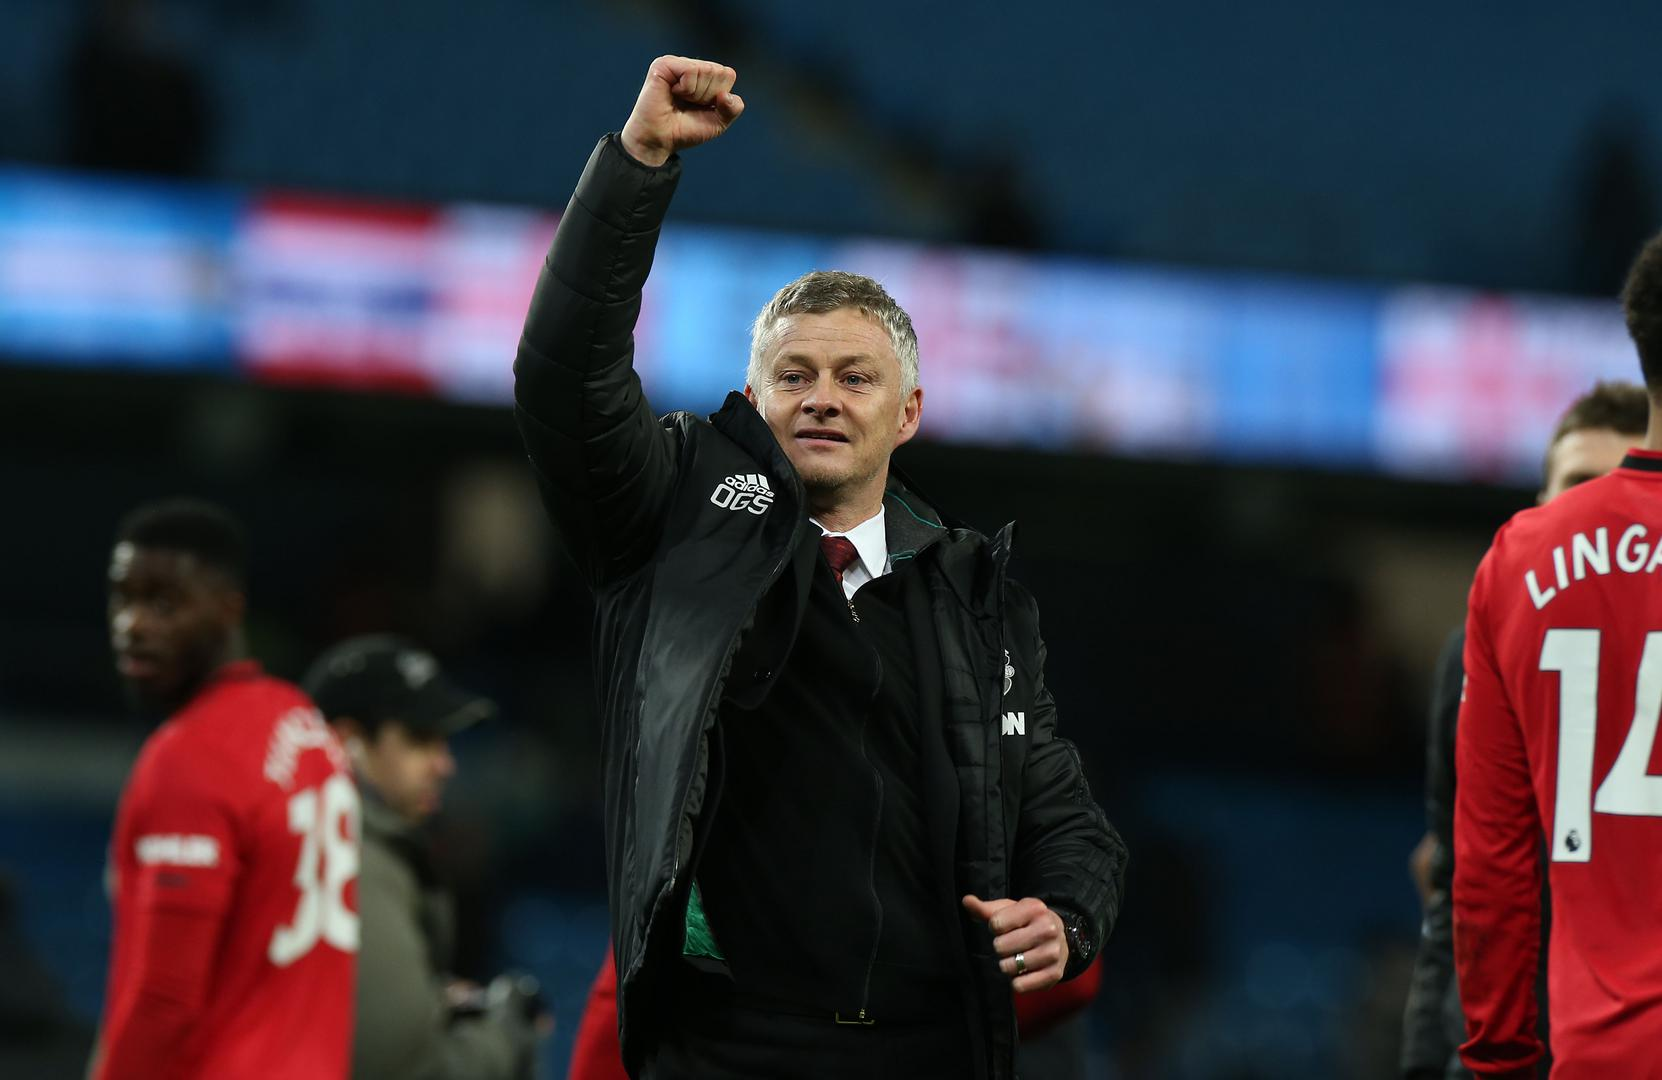 Ole Gunnar Solskjaer celebrates after Manchester United's 2-1 win at Manchester City,